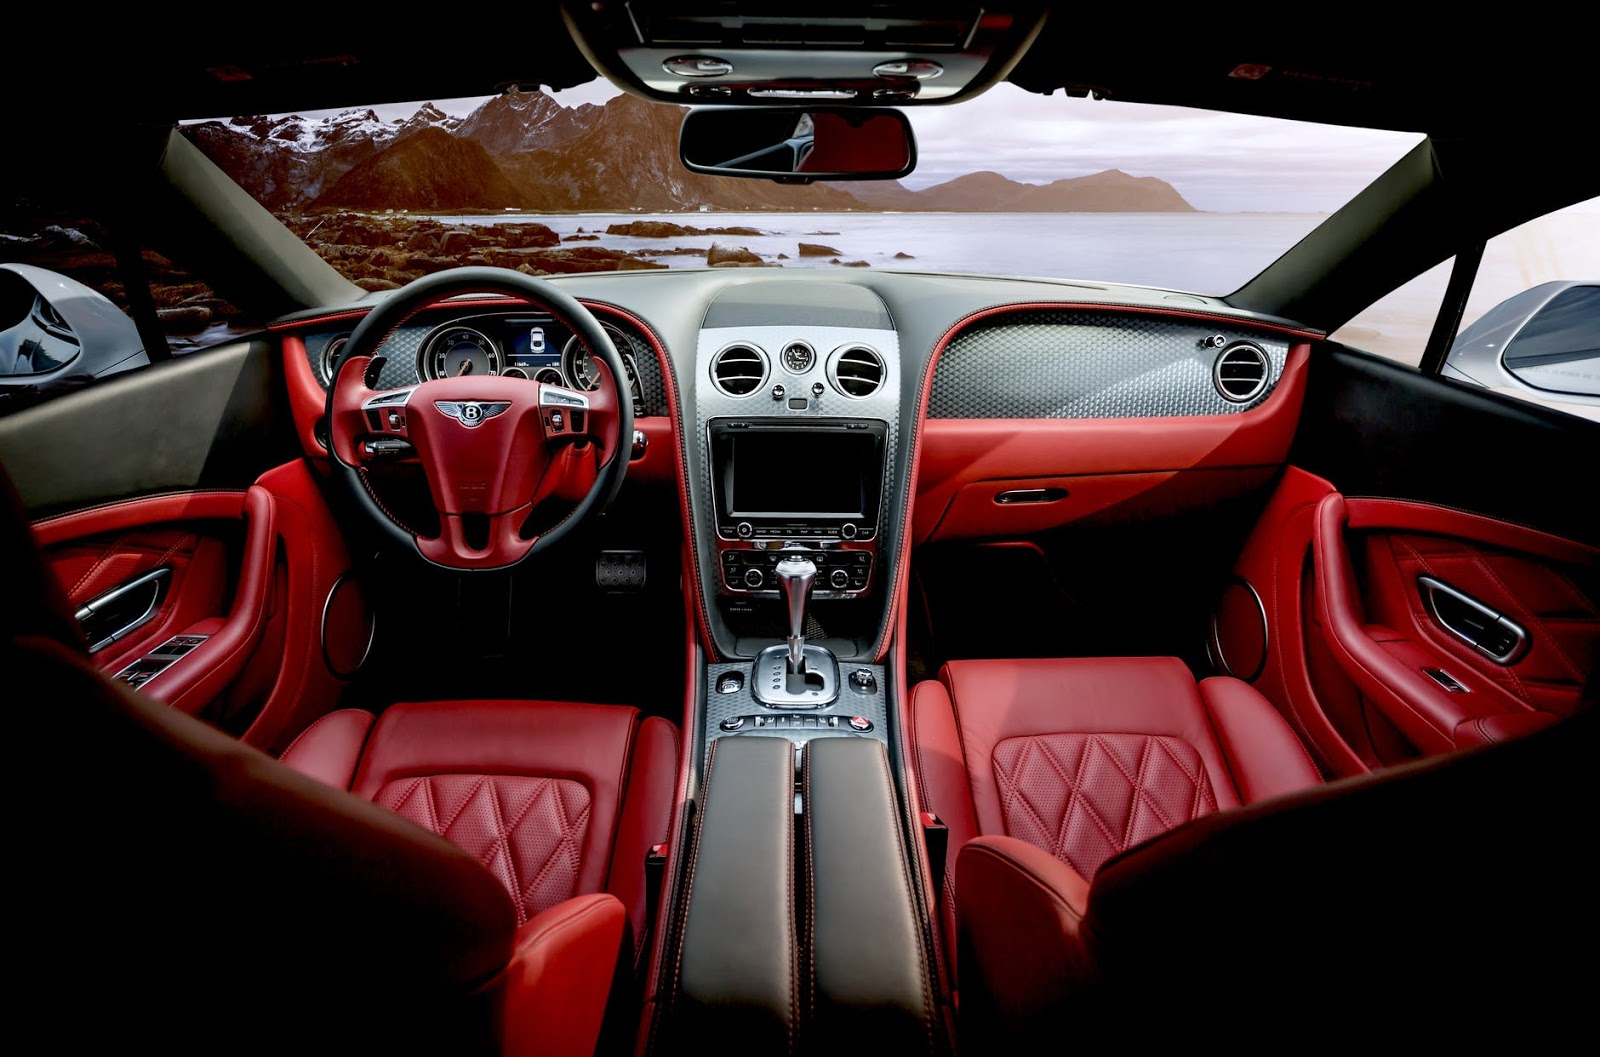 the interior of a luxury car, it's also red